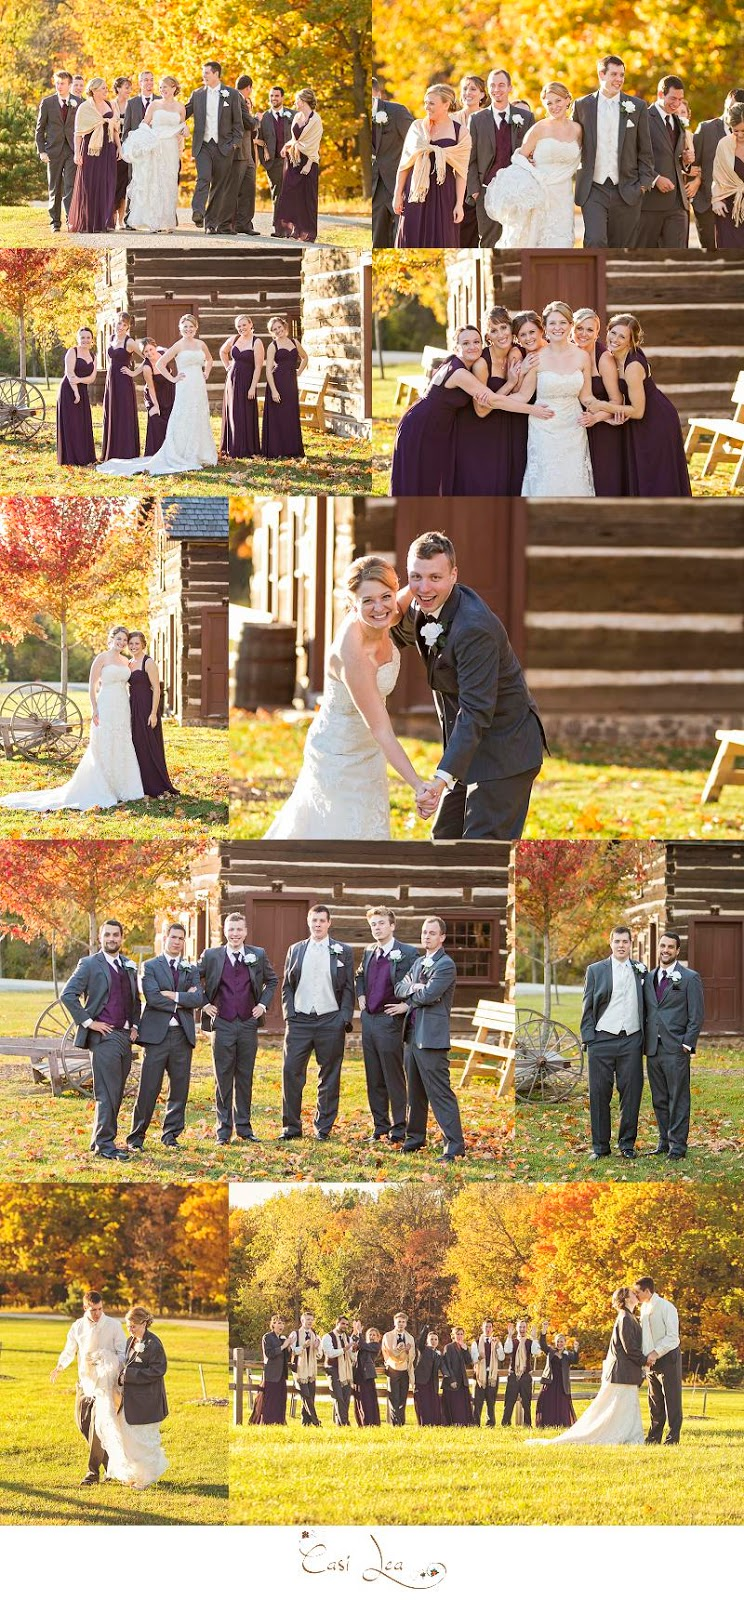 fall wedding, autumn colors, purple, eggplant, bridal party poses